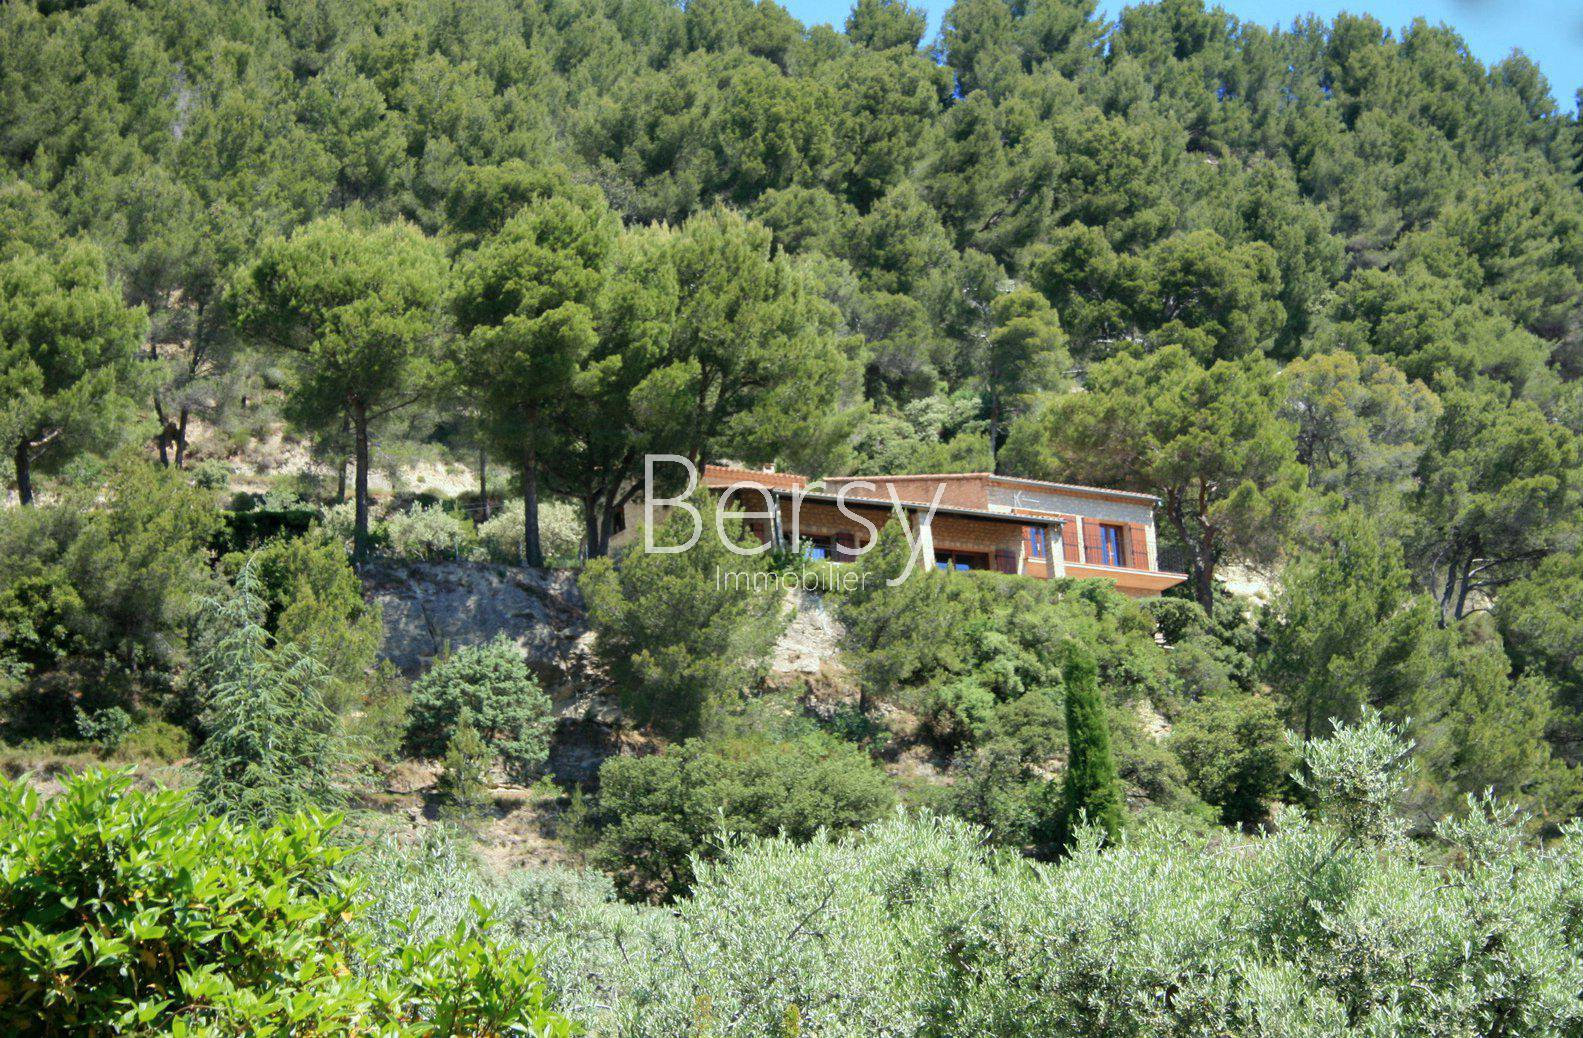 Ventes Bersy Immobilier